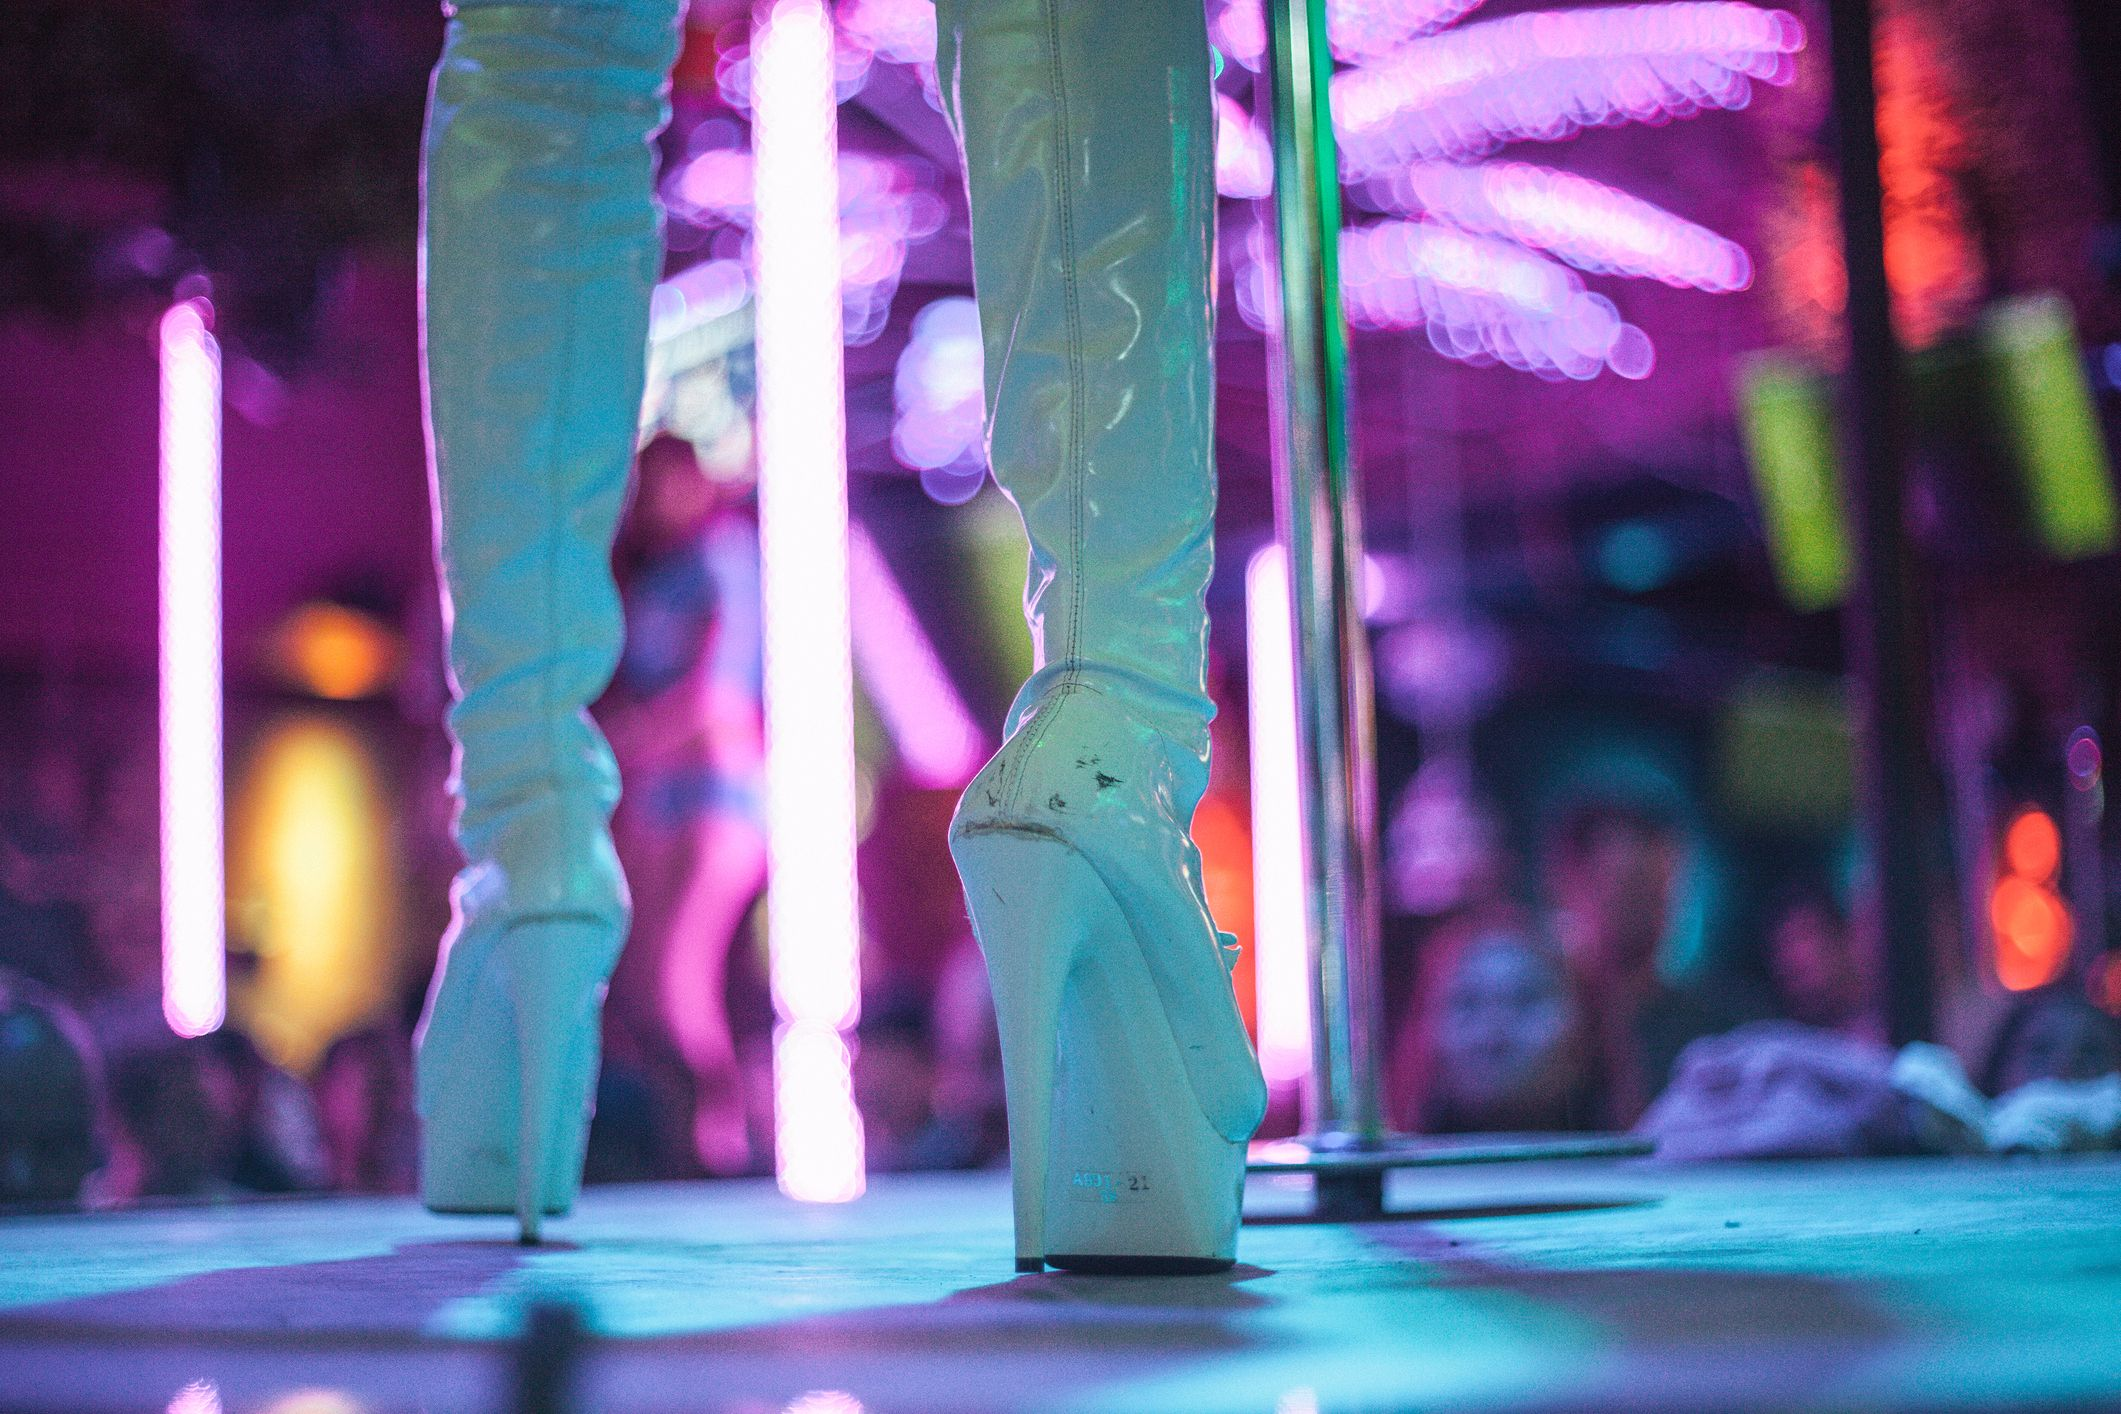 Strippers Are Sharing the Things They Wish They Could Tell Their Customers